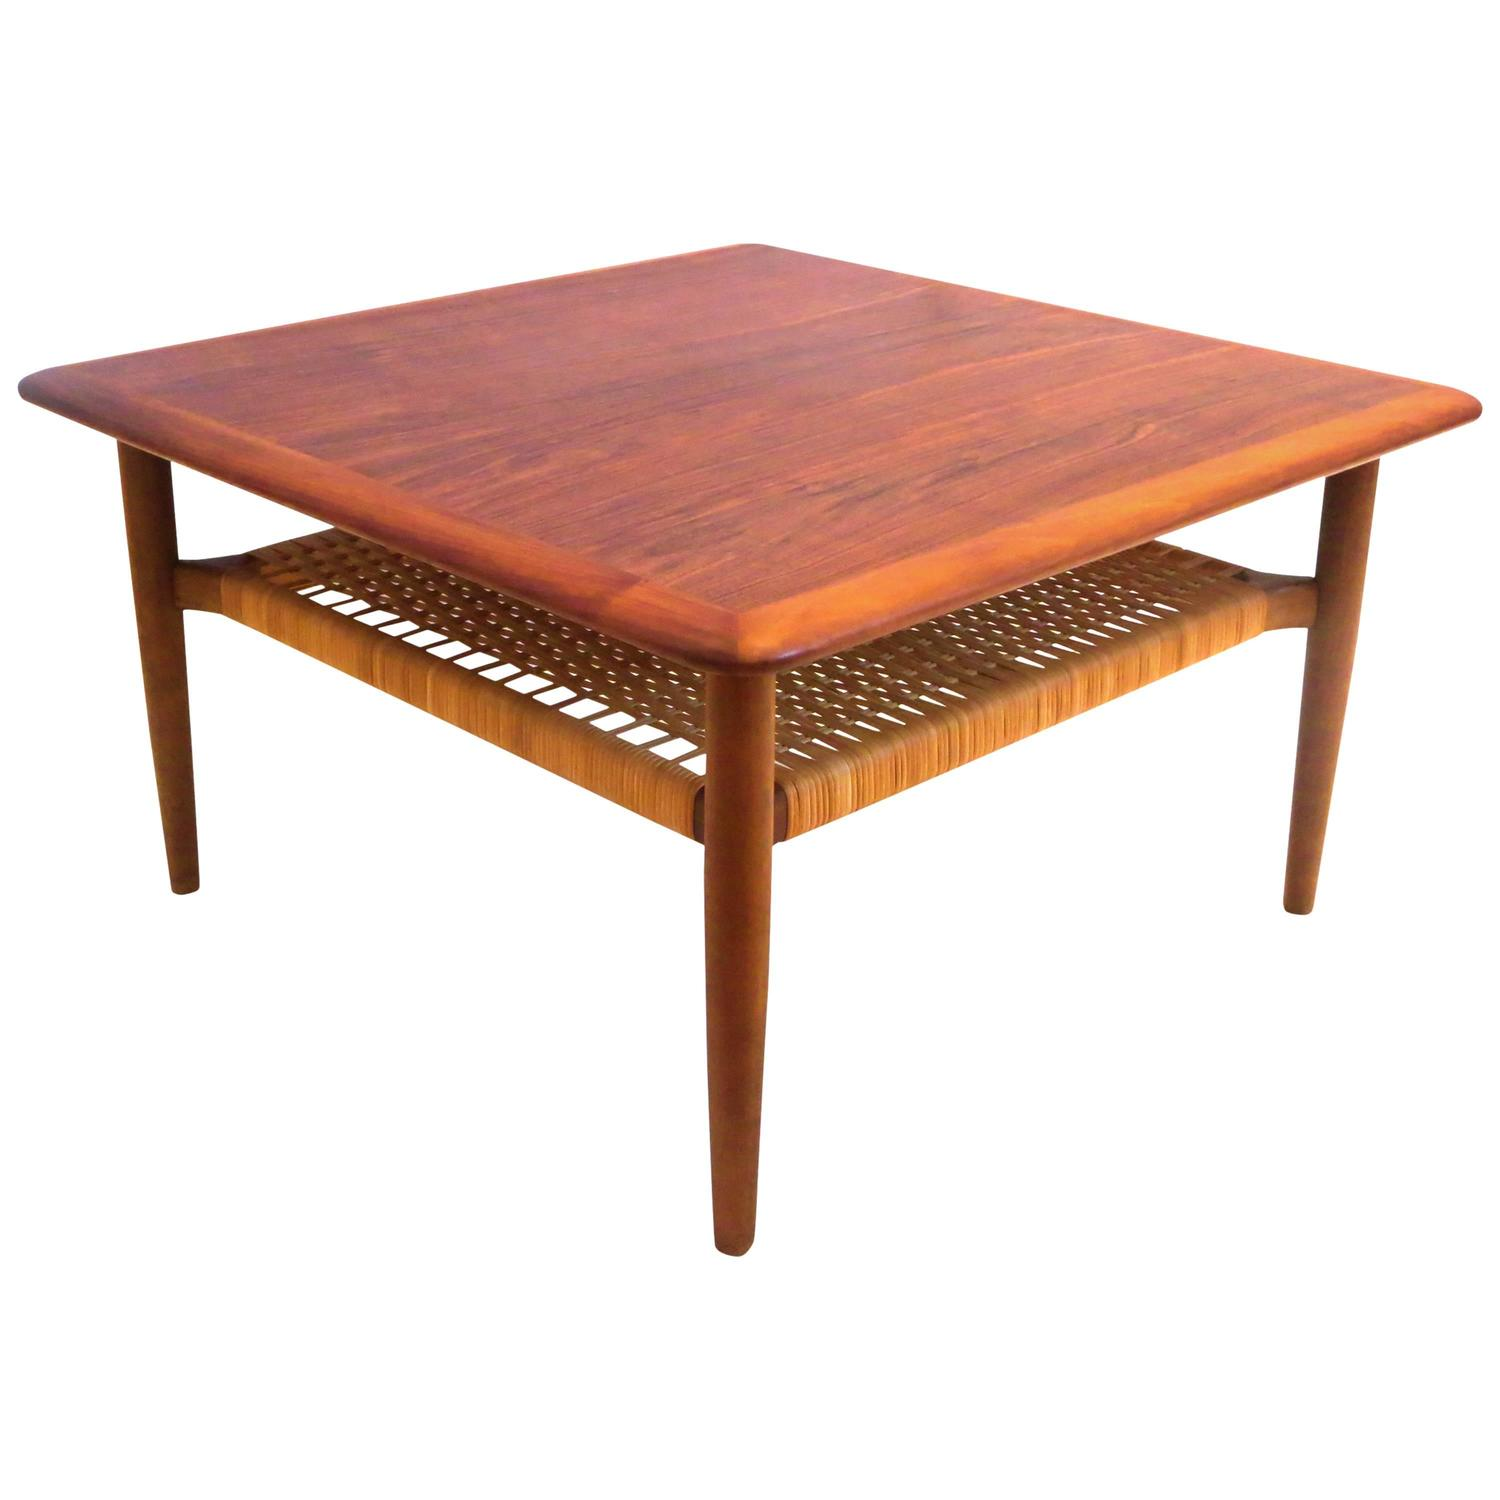 Danish Modern 1950s Square Coffee Table with Caned Shelf by Gunnar